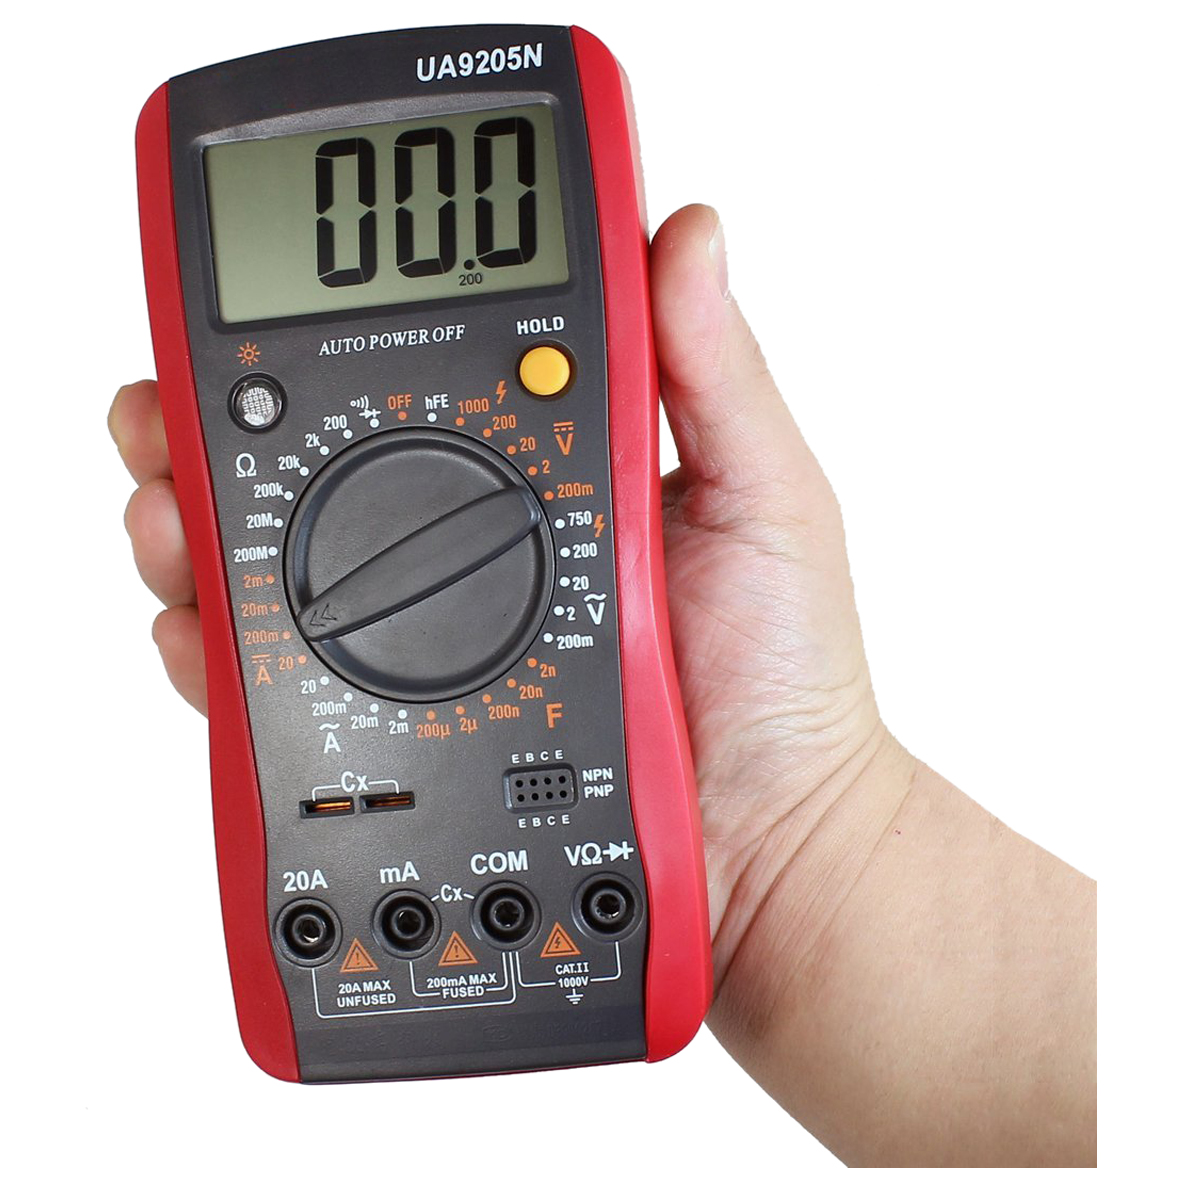 Check Ac Capacitor With Multimeter : Check electrolytic capacitor digital multimeter